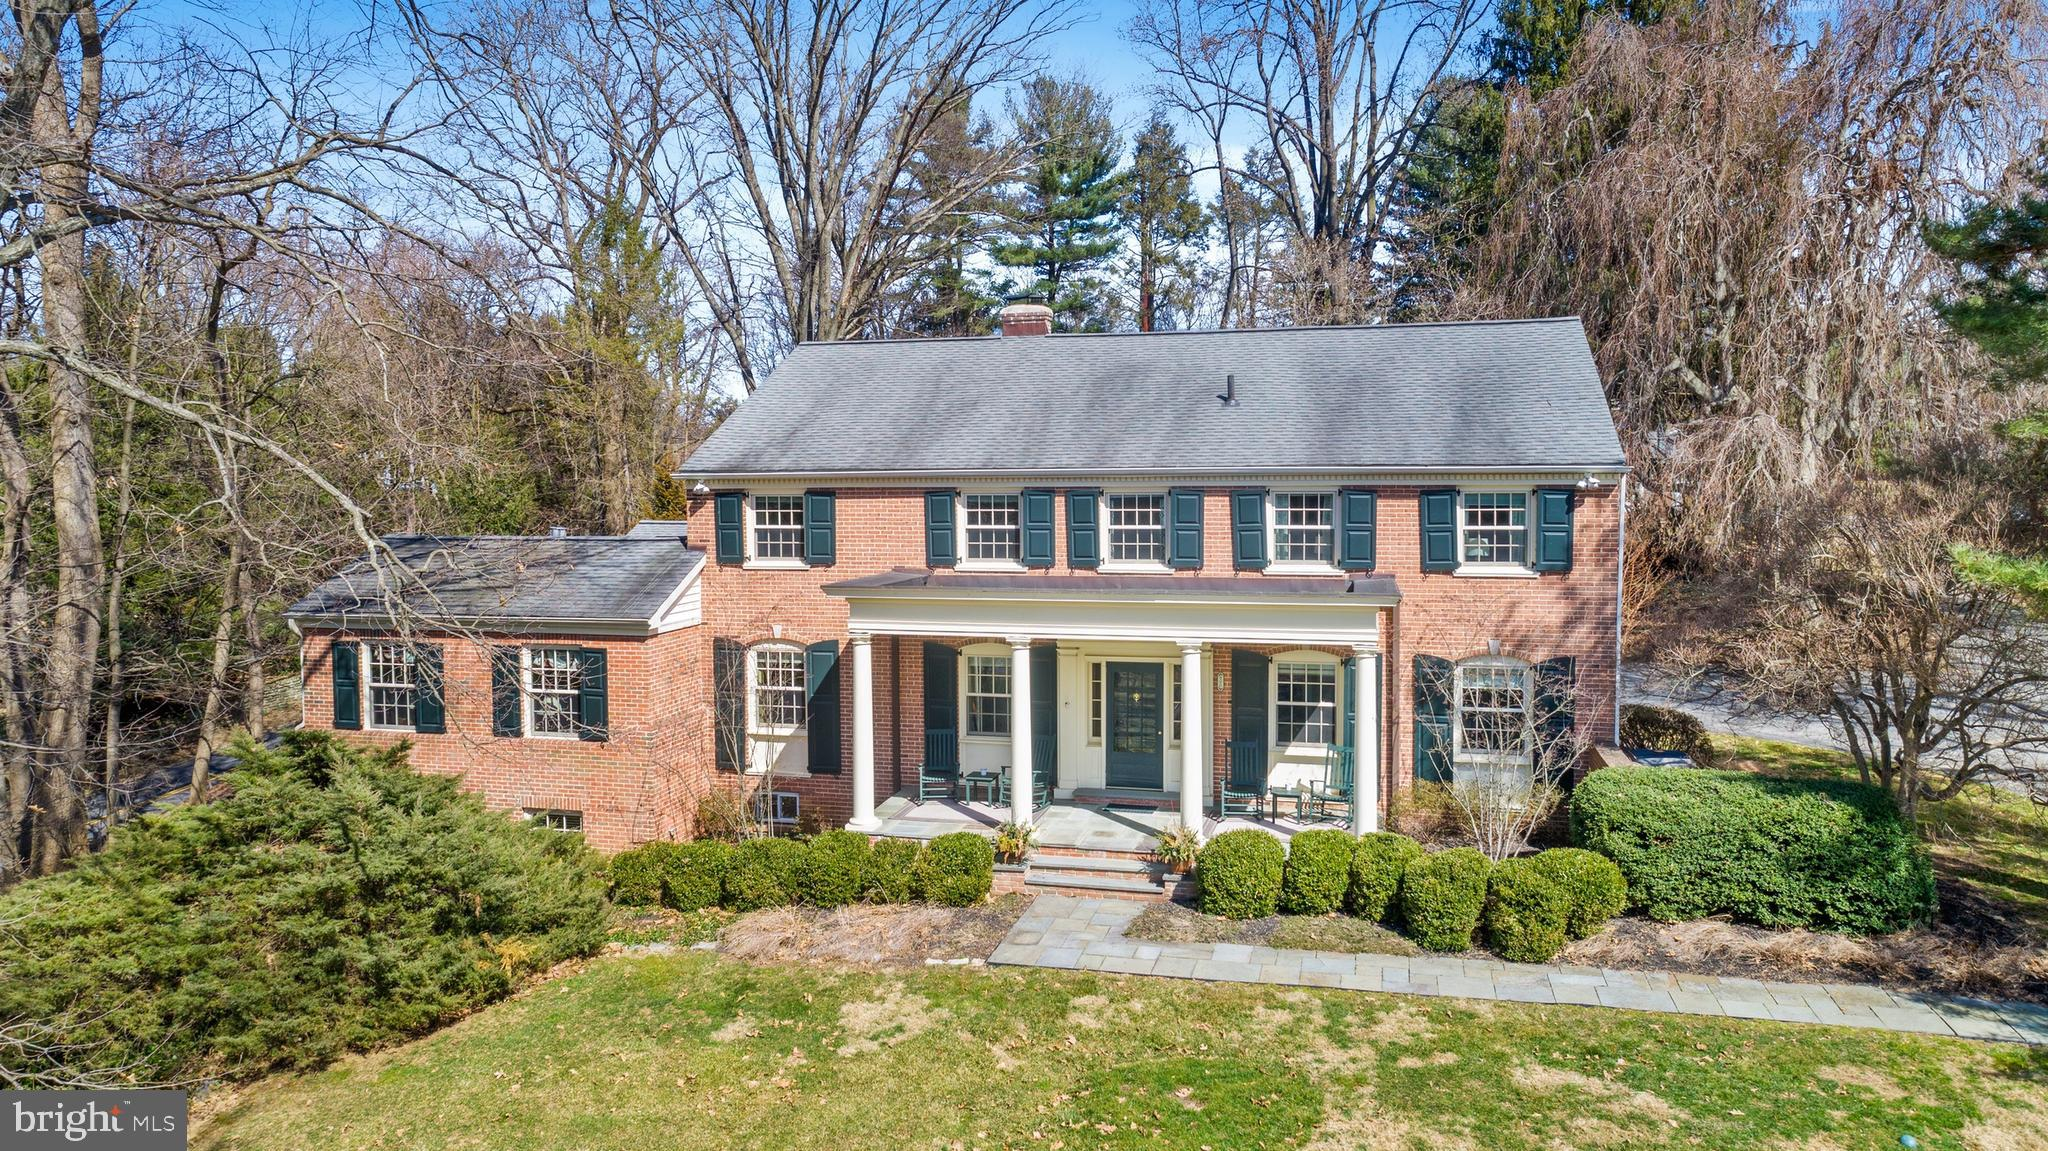 This 5 BD, 4/2 BA solid brick colonial has been beautifully updated and offers great, flexible living space! Significant improvements include a large FIRST floor Master Bedroom suite addition with a 3rd fireplace, sitting room, wet bar with beverage frig, private deck (with foundation & electricity in place for a hot tub), Master BA, walk-in closet, and spacious main floor Laundry Room. The totally renovated Kitchen has neutral white cabinets, stainless appliances, gas range with built-in exhaust hood, and a Breakfast Bar. It overlooks the vaulted Family Room with gas fireplace (which could also be used as a large Breakfast Room.) Enjoy gorgeous sunsets from the southern-style covered front porch or al fresco dining on the rear flagstone patio! Center Entrance Hall opens to Living Room with built-ins and a wood-burning fireplace and to the very private 1st Floor Den/Office with Powder Room. Gracious, centrally located Dining Room. Upstairs is a SECOND Master Bedroom suite with 2 large closets and en suite full BA. Bedroom 3 also has its own full BA. Bedrooms 4 and 5 share the Jack n Jill 4th full BA. All Bathrooms are neutral and updated. With master bedrooms on both levels, this home works well for multi-generational families. Downstairs is an expanded, large basement with rooms for TV watching, game tables, exercise, a 2nd Half BA, and 2nd laundry/utility/storage. Great closet space abounds, plus there is additional storage in the floored attic and in the attached 2-car garage. Pride of ownership is evident in this meticulously maintained and updated home! The quiet, cul-de-sac street has access to tranquil grounds with a scenic pond and walking paths on the campus of a nearby school. Located near downtown Bryn Mawr, this home is also close to train stations, Bryn Mawr Hospital, Villanova University, movies, shops and restaurants. Easy access to corporate centers, Blue Route, Center City, and Airport. * * * Please note that Delaware County is conducting a real est